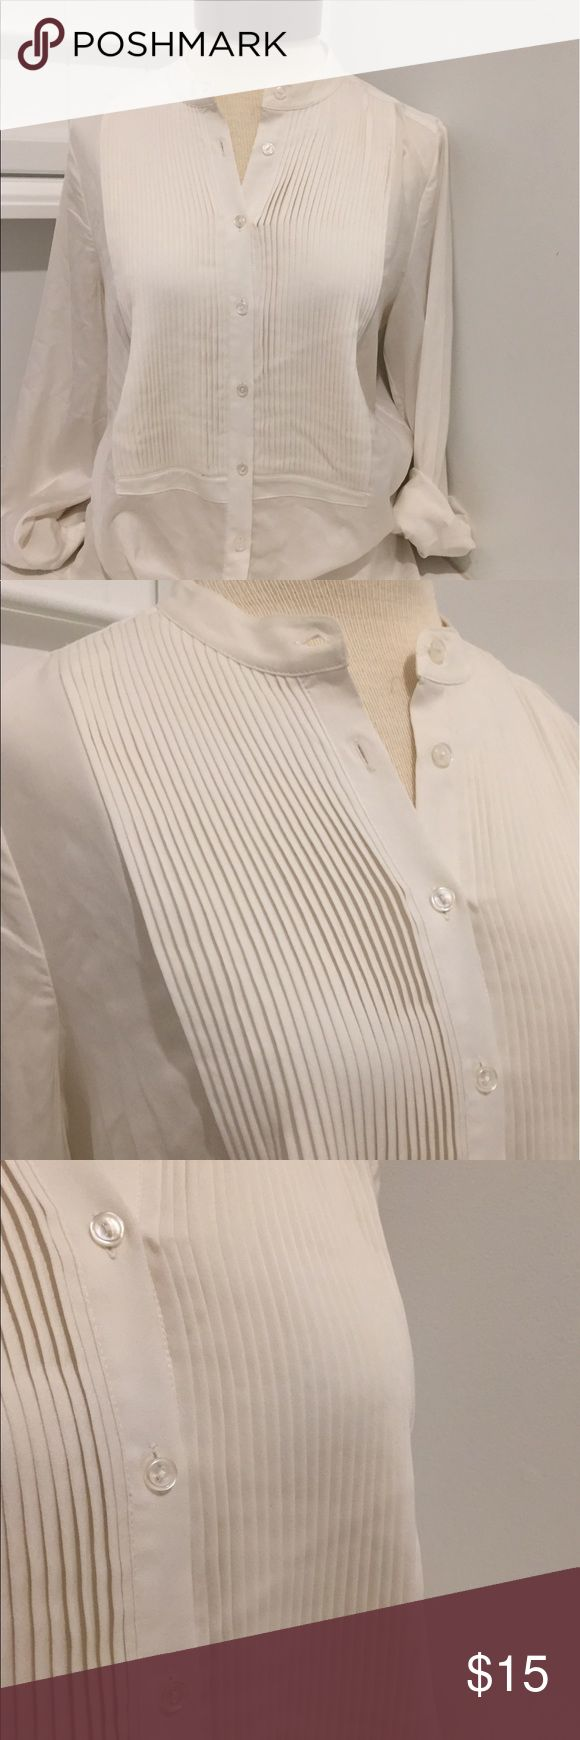 J Crew Small Top Drapey Tuxedo Blouse Small flown J Crew Small Top Drapey Tuxedo Blouse Small Beige Ivory Pleated Flowy Blouse J. Crew Tops Button Down Shirts